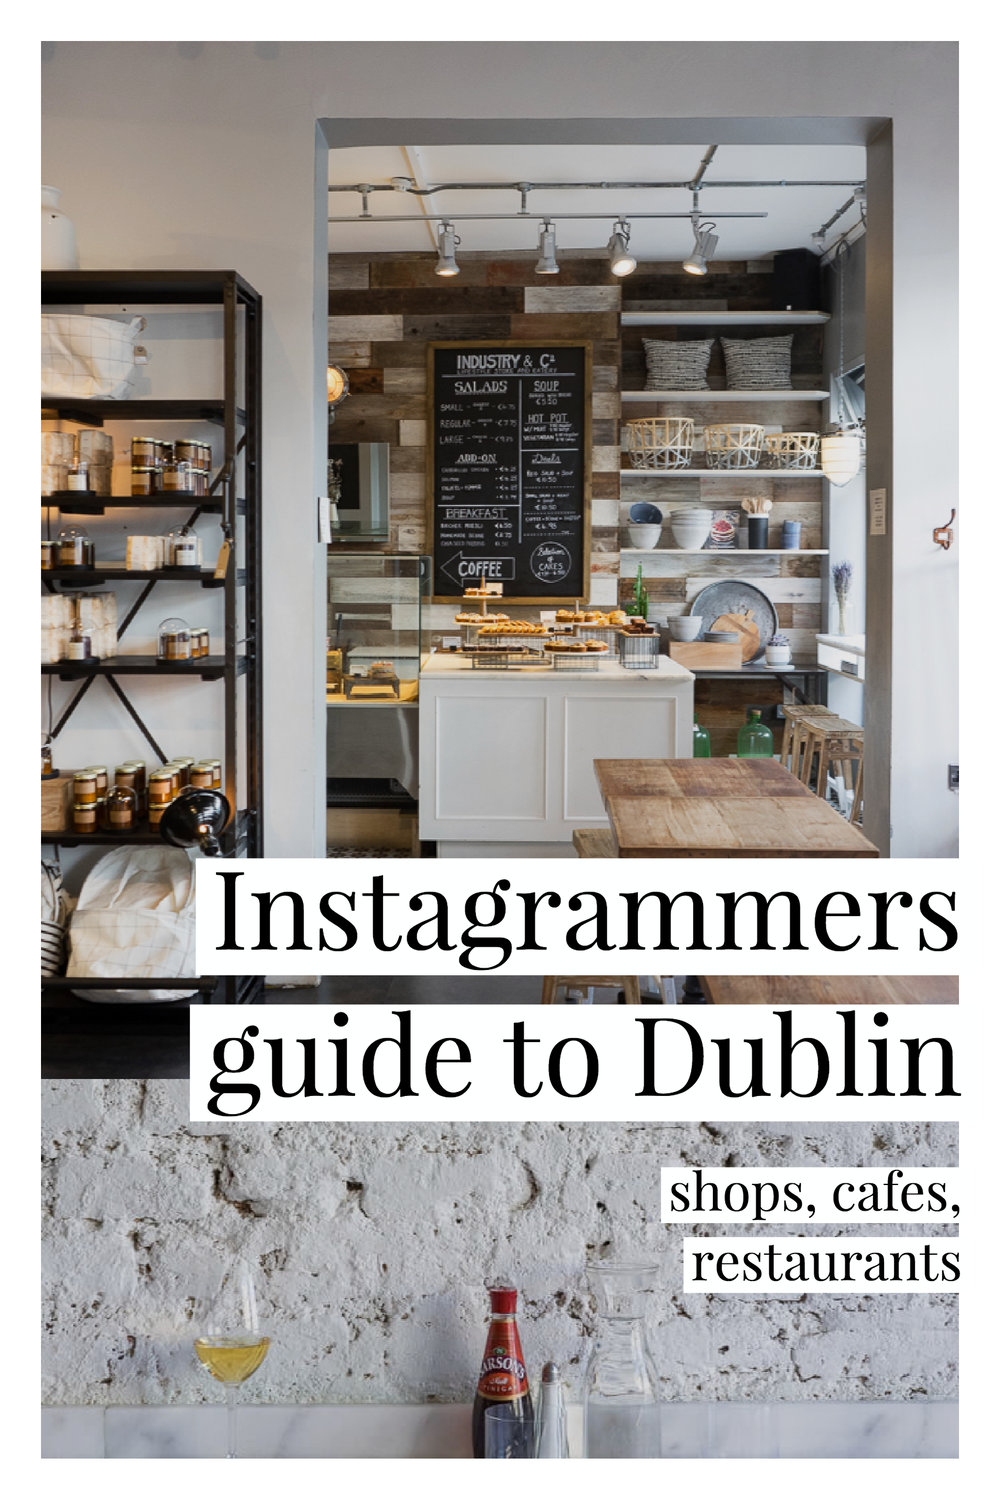 Instagrammers Guide to Dublin